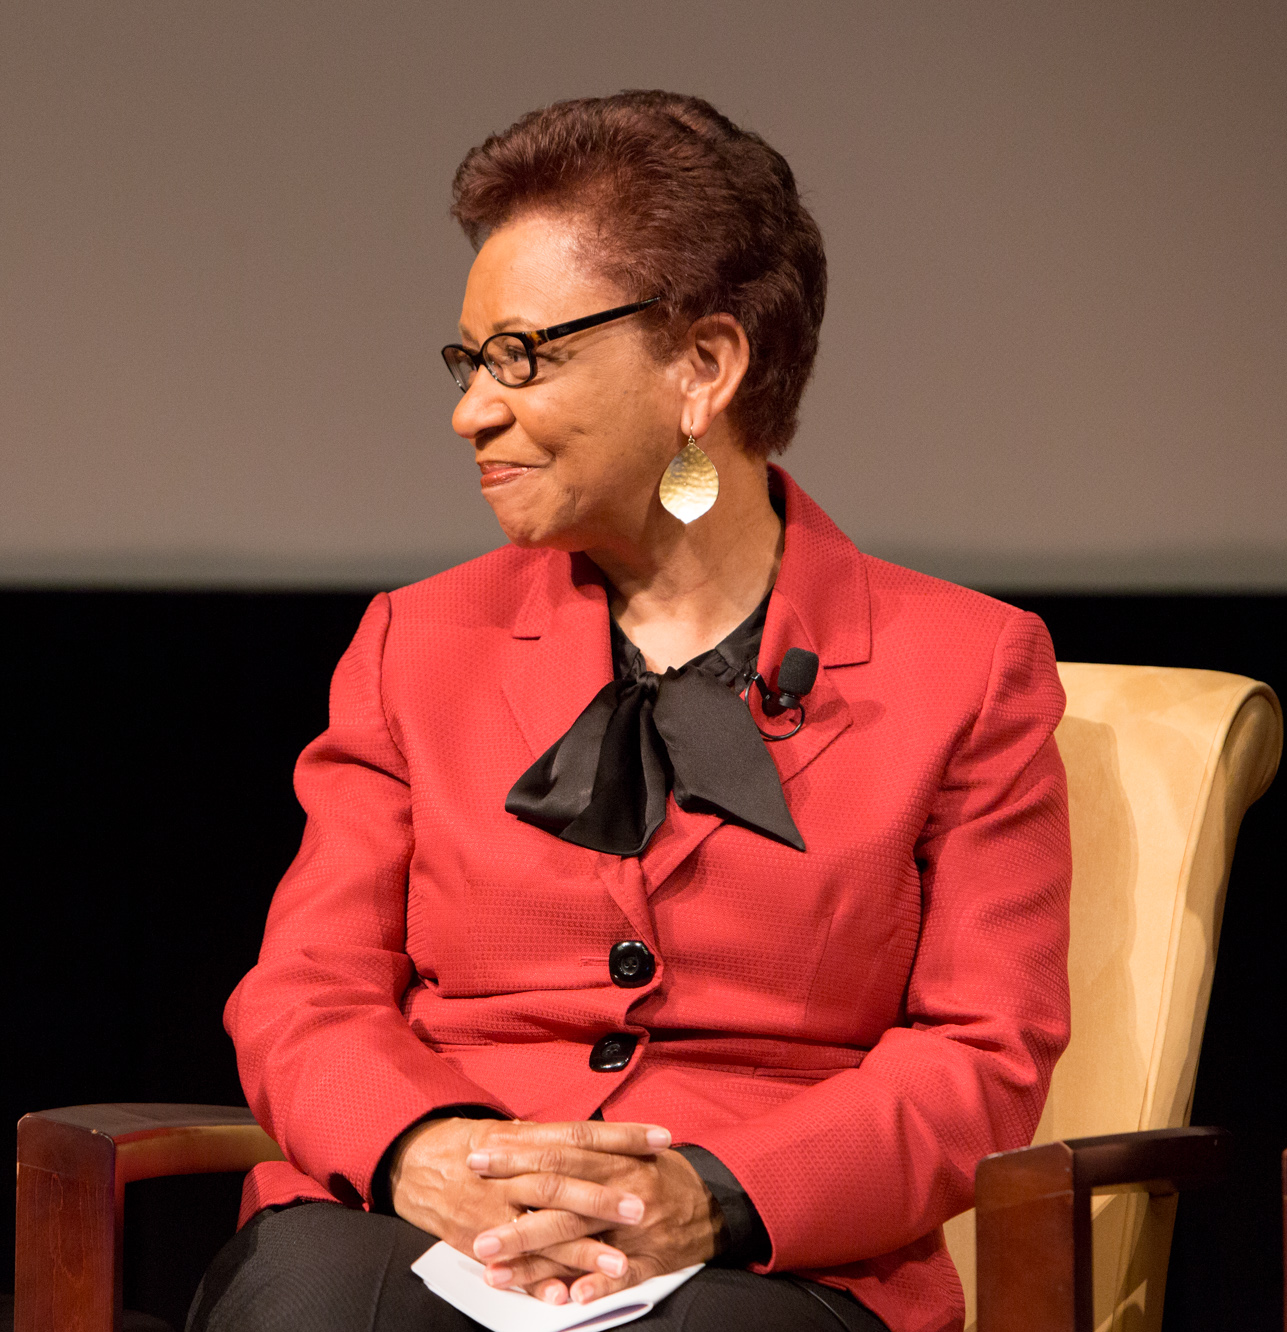 Medford discusses First Ladies at the [[U.S. National Archives]] in 2015